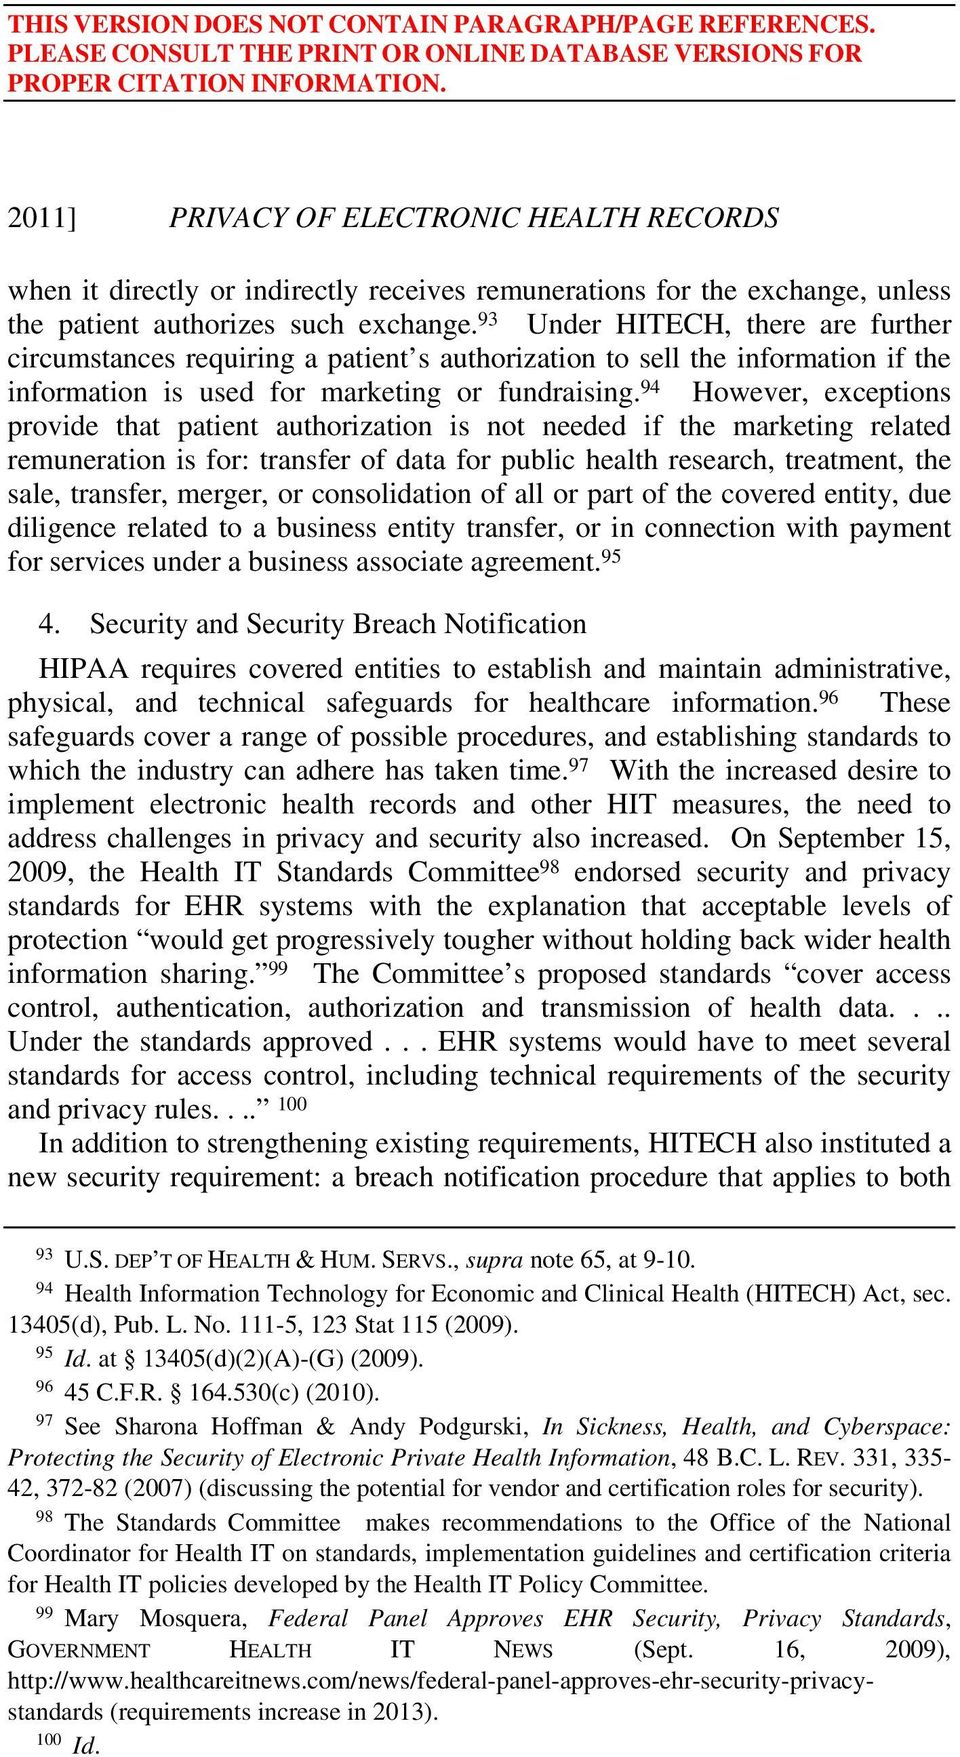 94 However, exceptions provide that patient authorization is not needed if the marketing related remuneration is for: transfer of data for public health research, treatment, the sale, transfer,